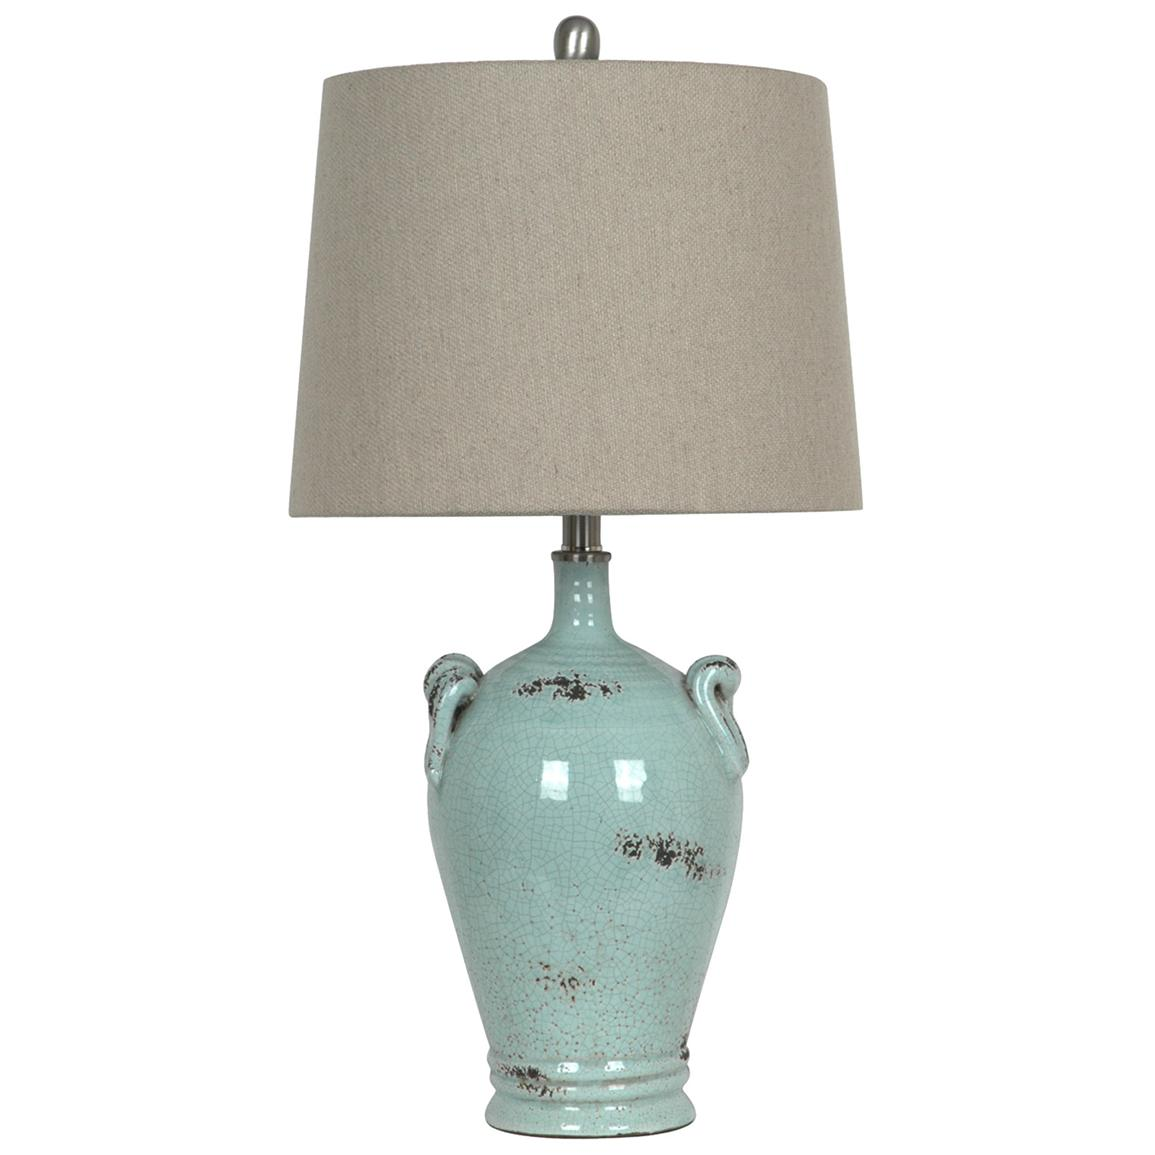 Crestview® Casa Table Lamp